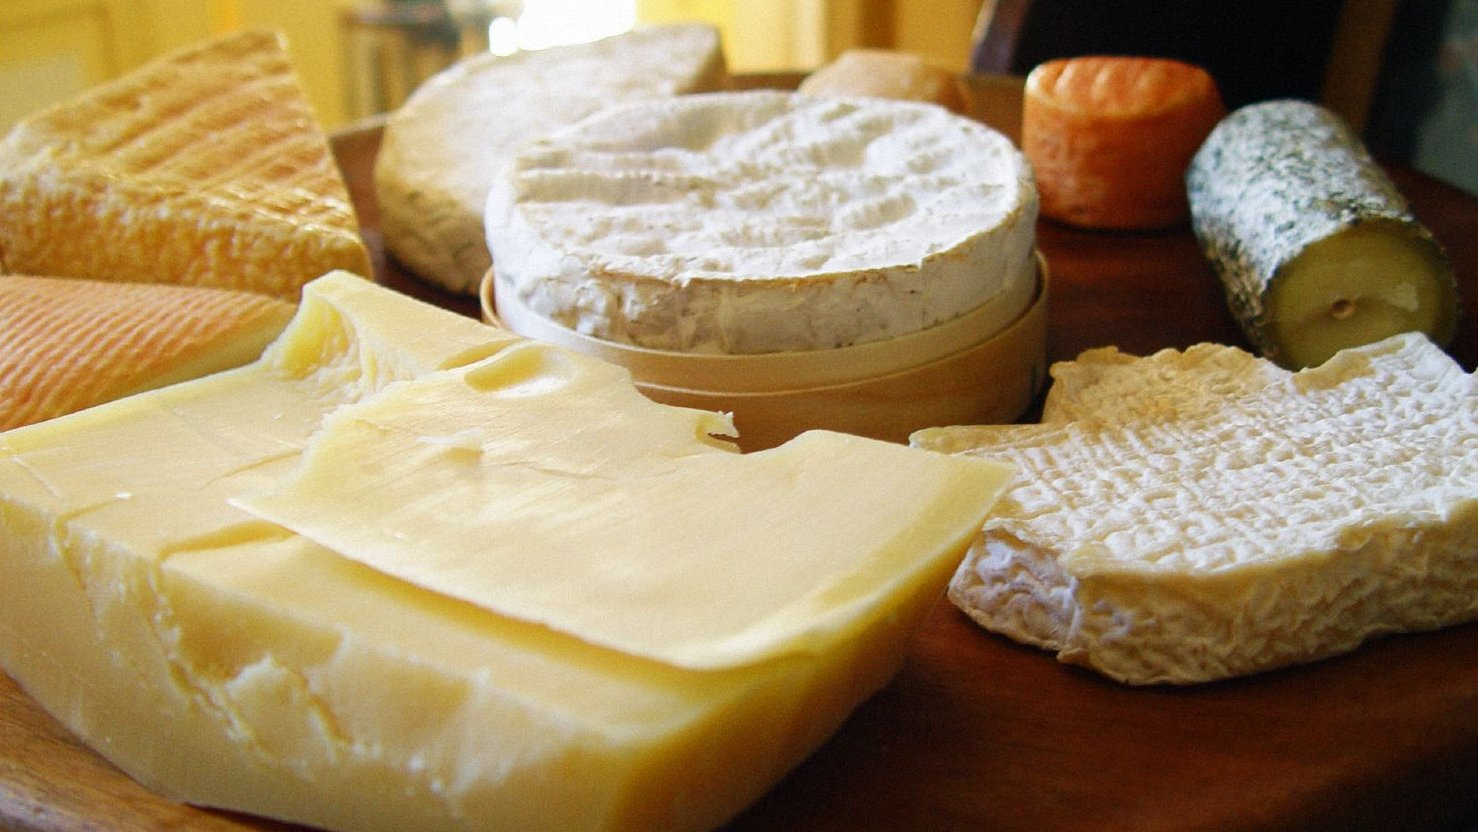 Cheese could reduce your diabetes risk gizmodo australia for Authentic french cuisine